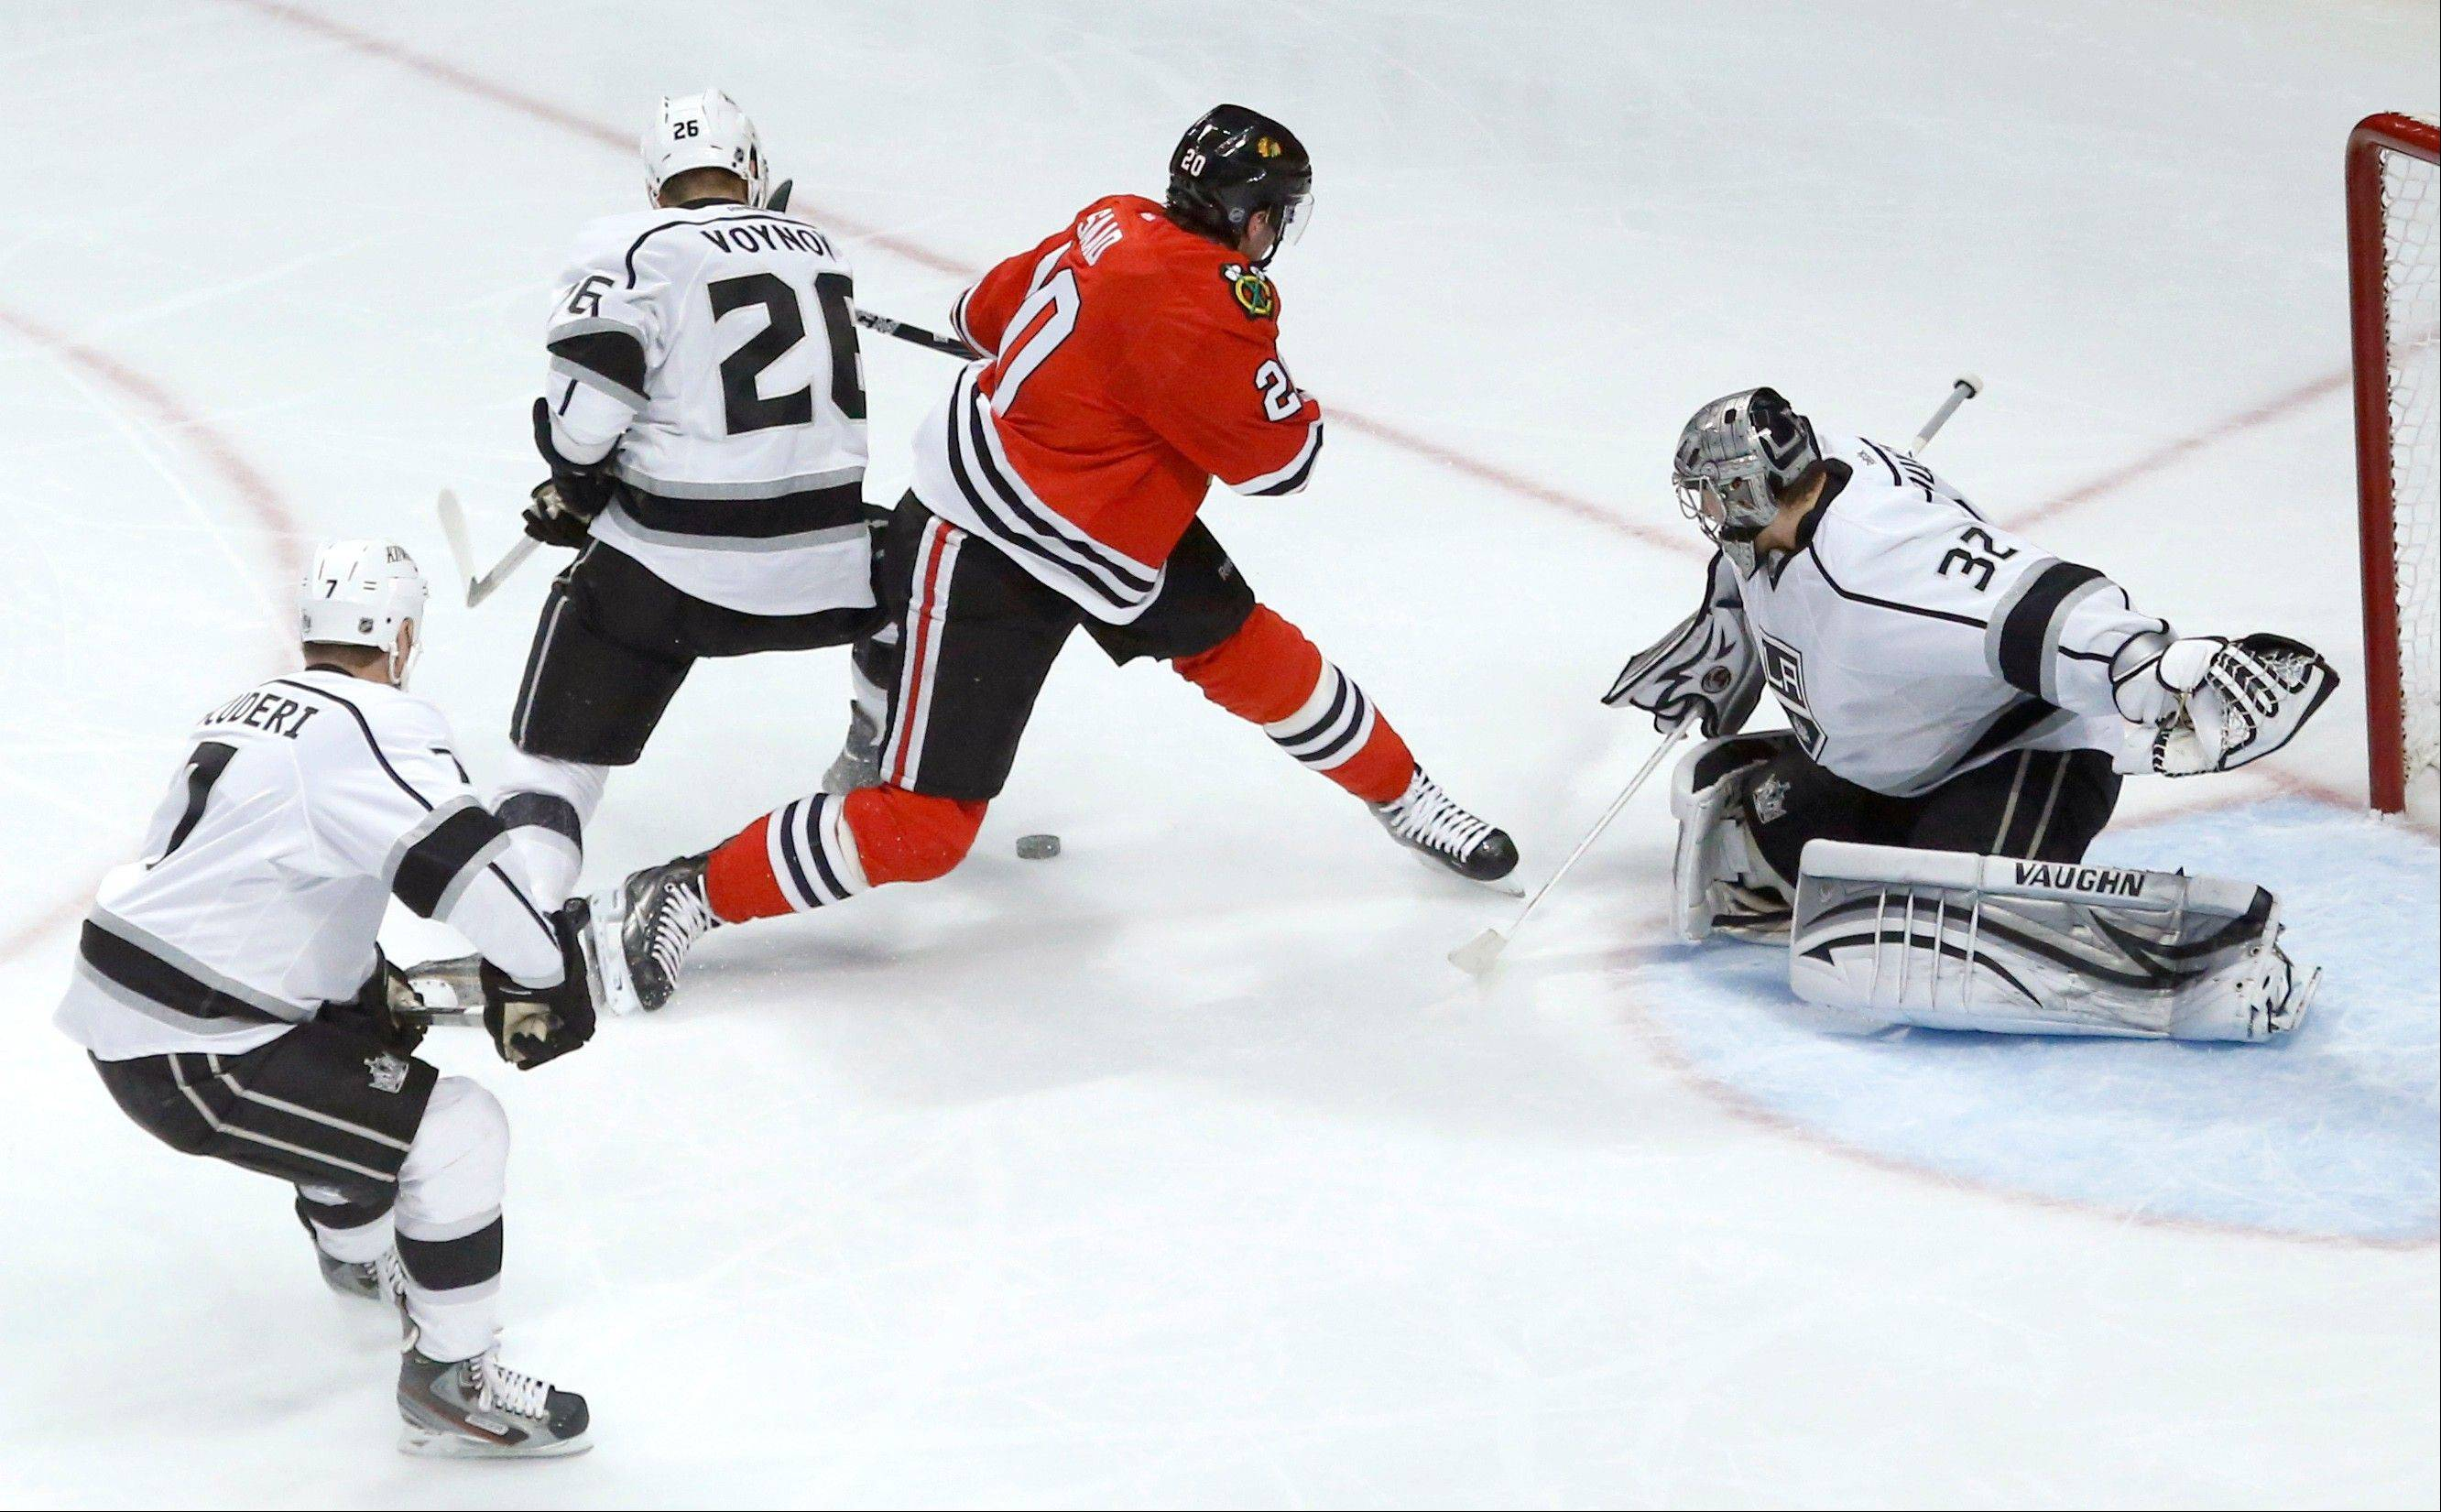 Los Angeles Kings defenseman Slava Voynov (26), of Russia, keeps Chicago Blackhawks left wing Brandon Saad from getting a shot on goal as Rob Scuderi (7) and goalie Jonathan Quick watch during the second period.